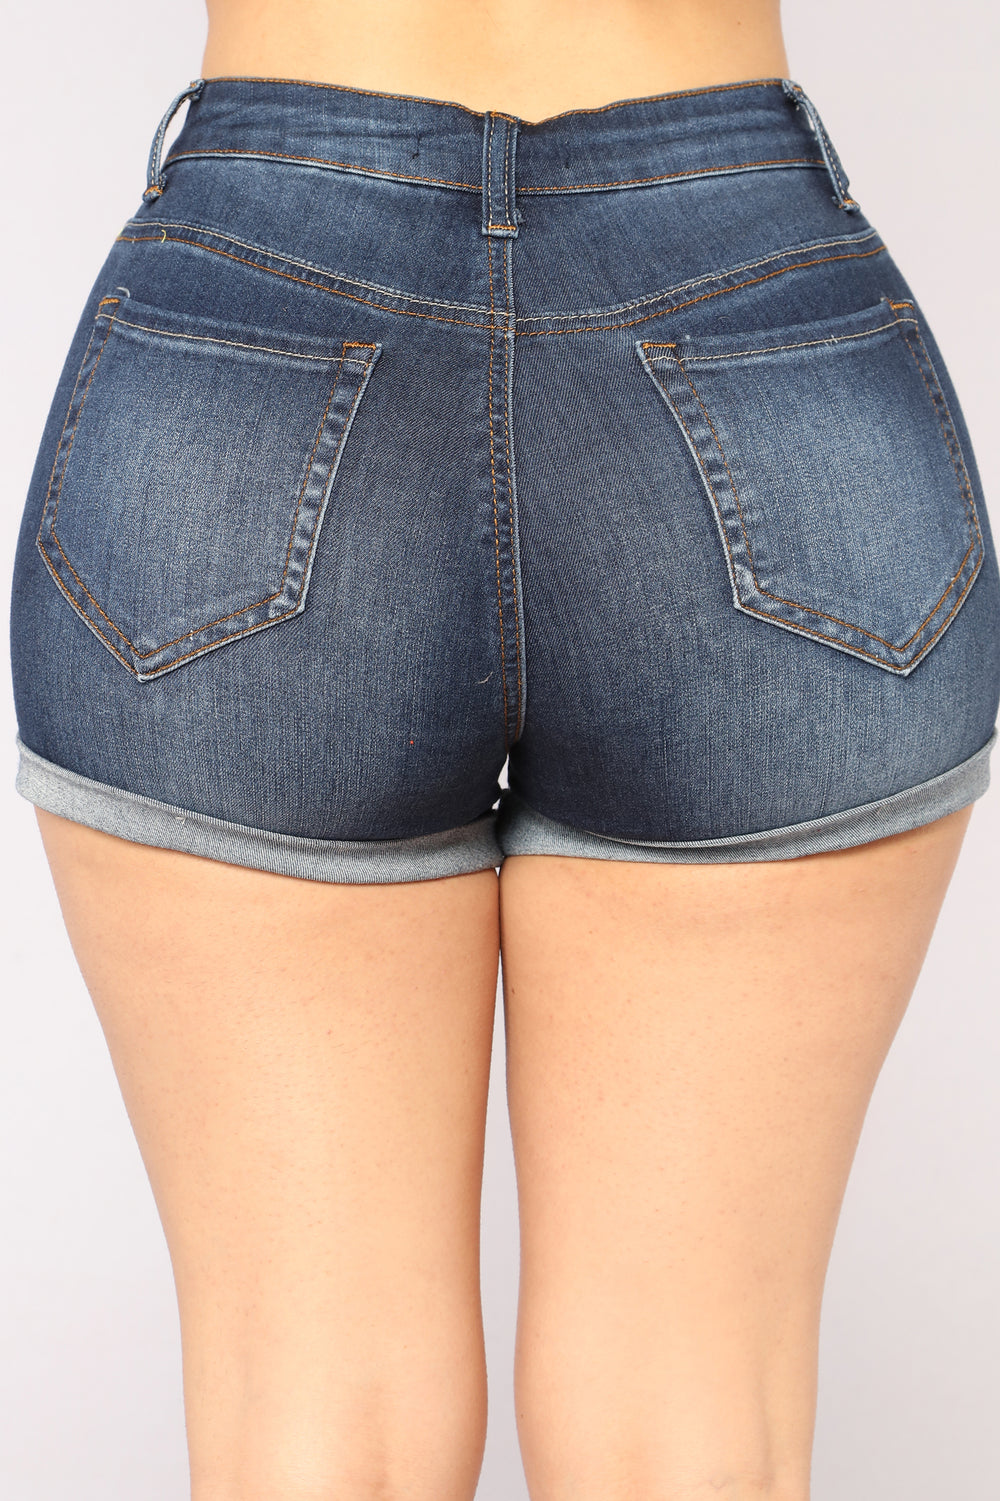 Summer Daze Denim Shorts - Dark Denim